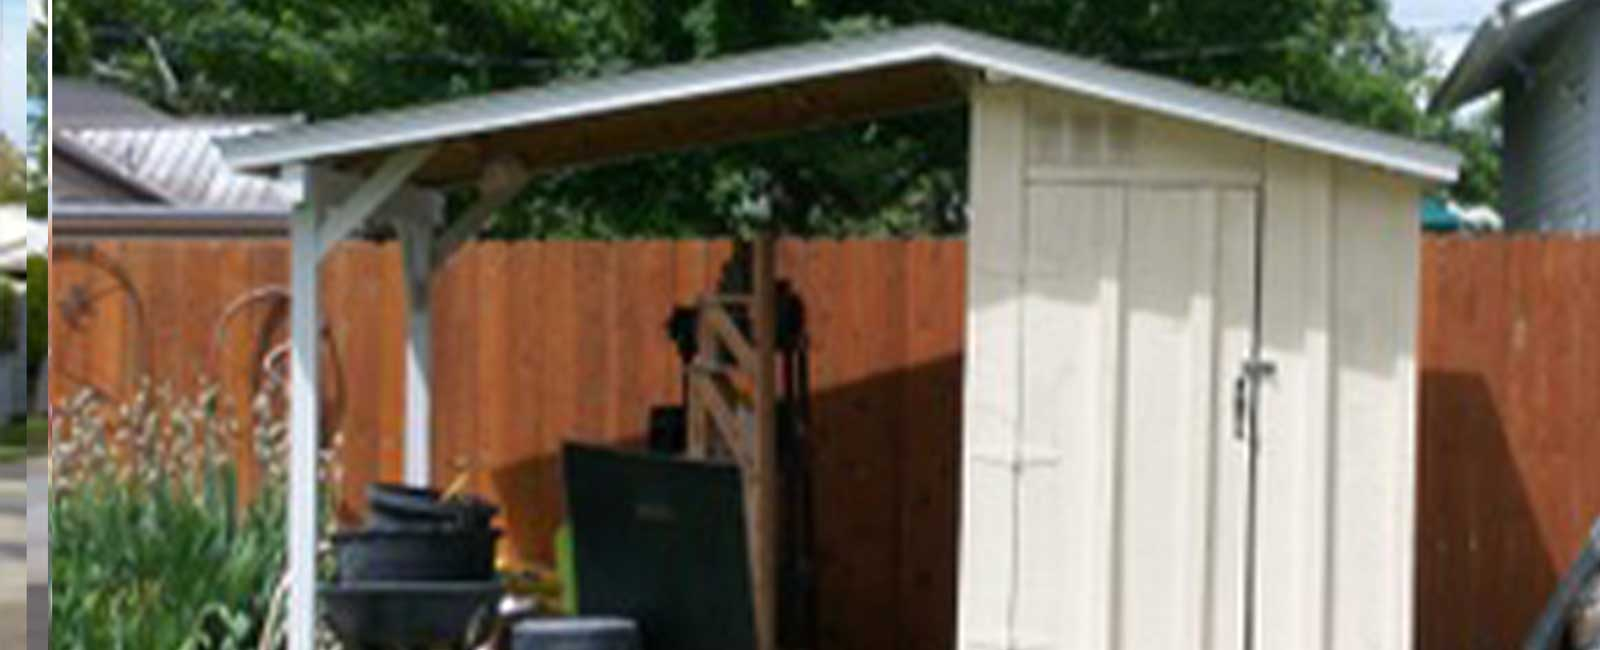 Backyard Shed - Painted